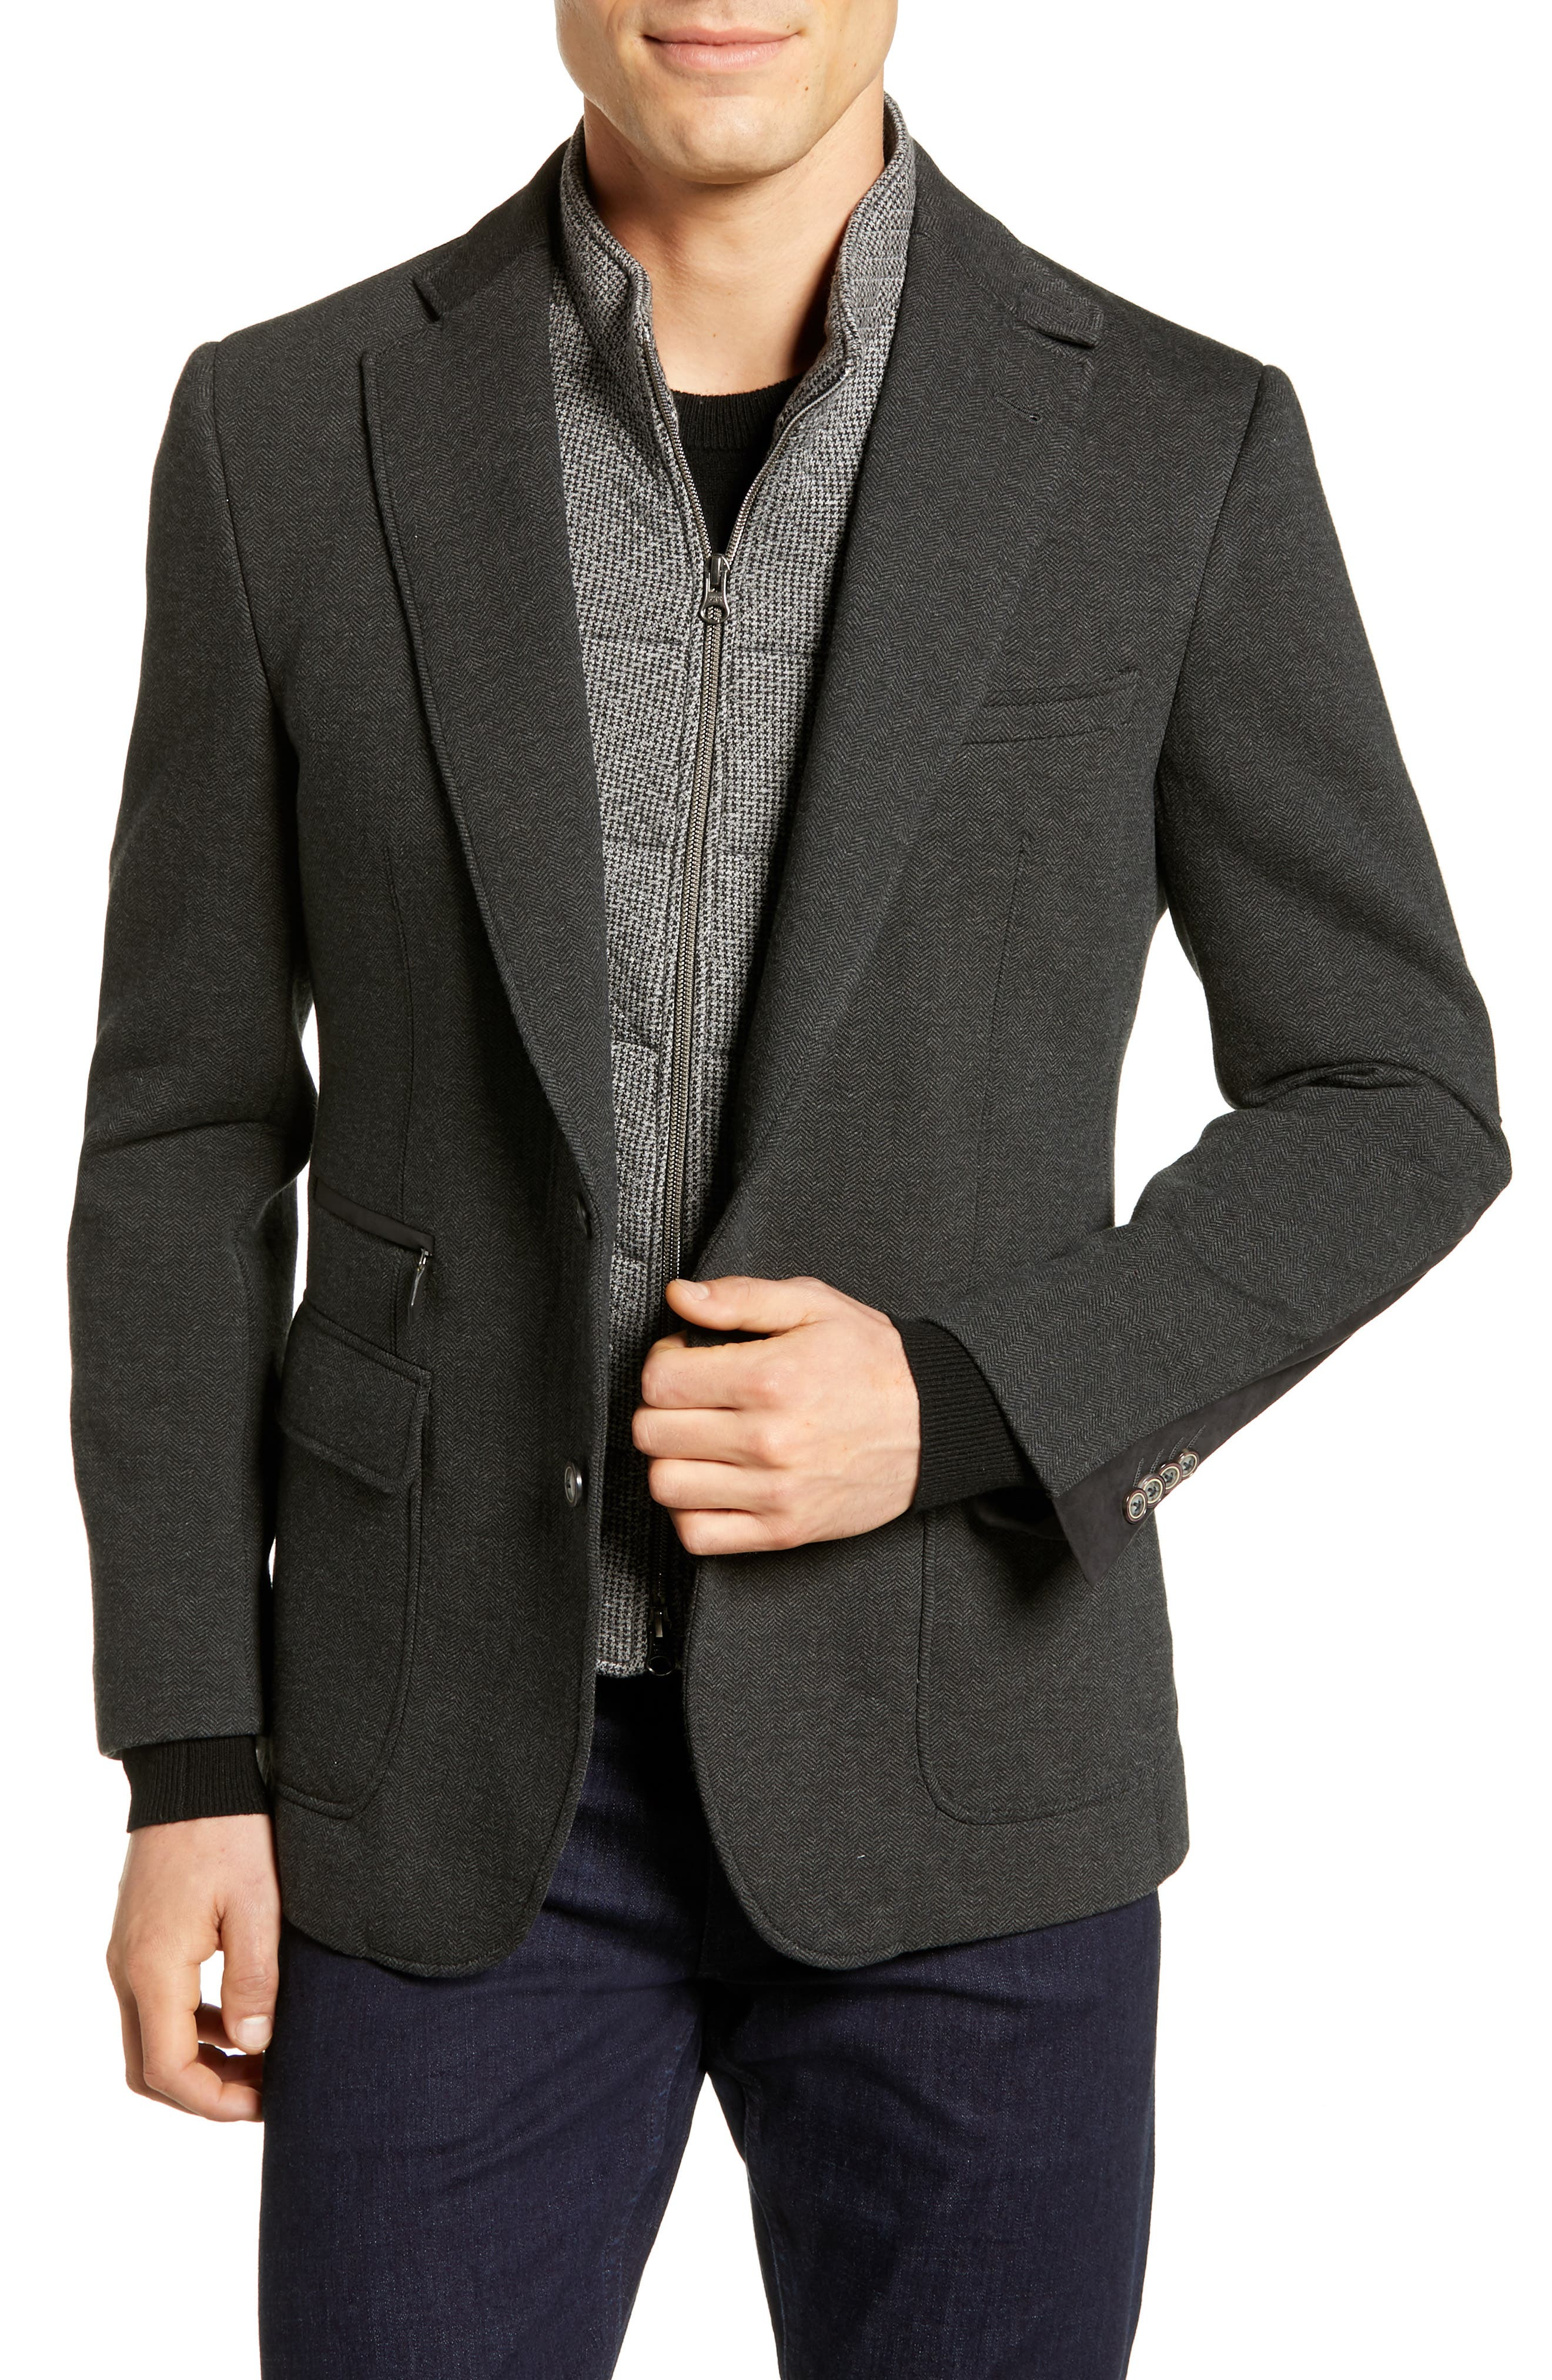 Downhill Tailored Fit Sport Coat,                             Main thumbnail 1, color,                             020